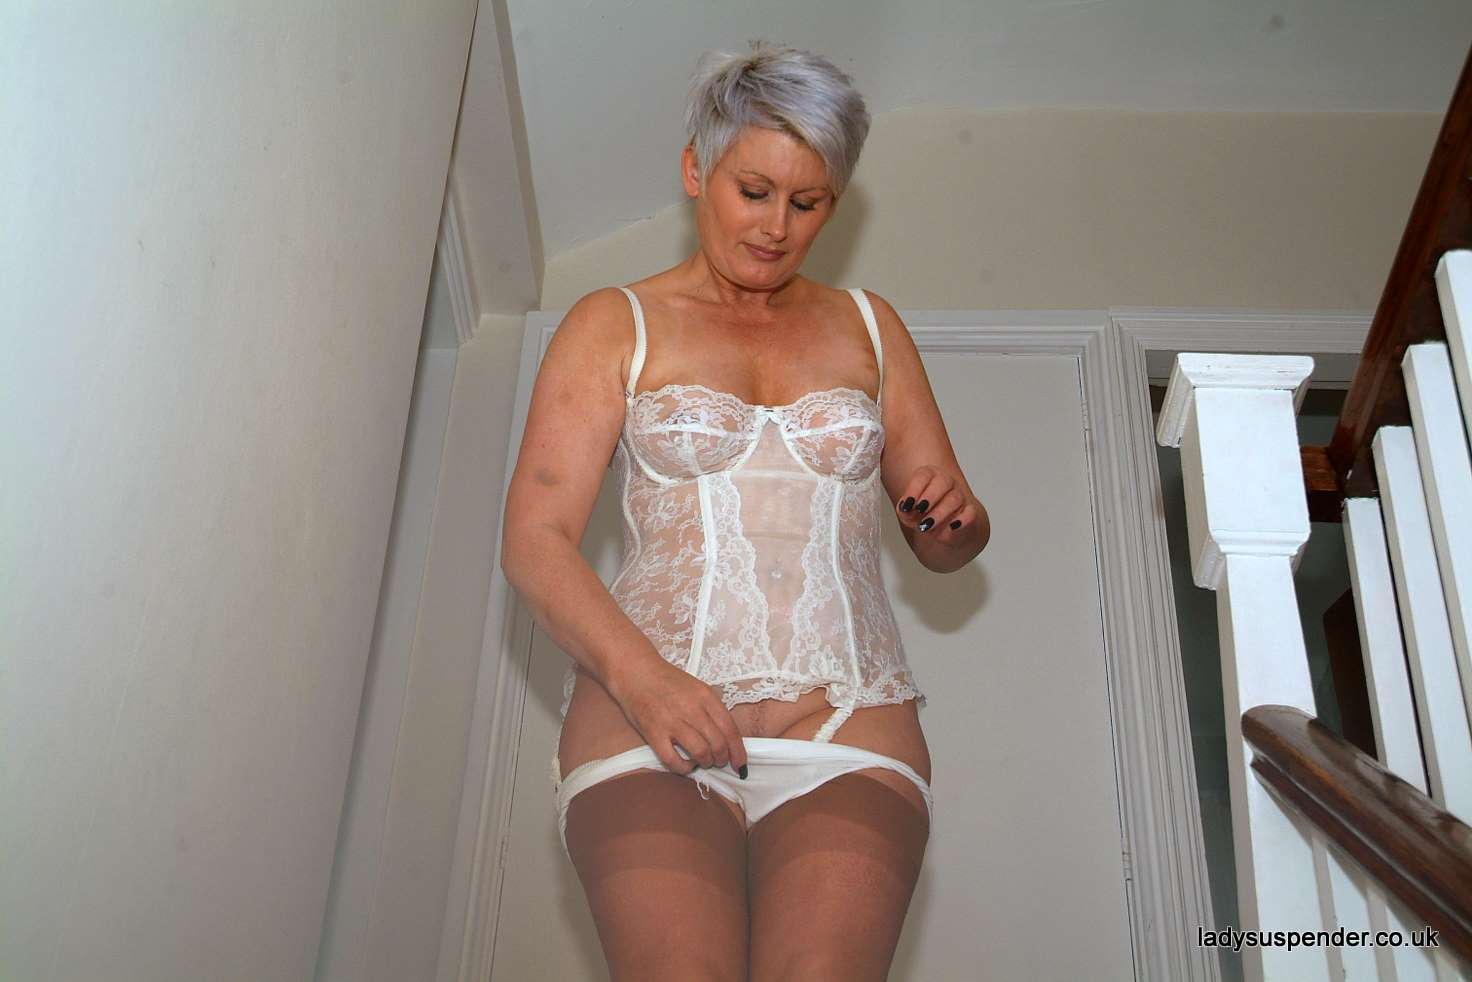 That interfere, Milfs in girdles